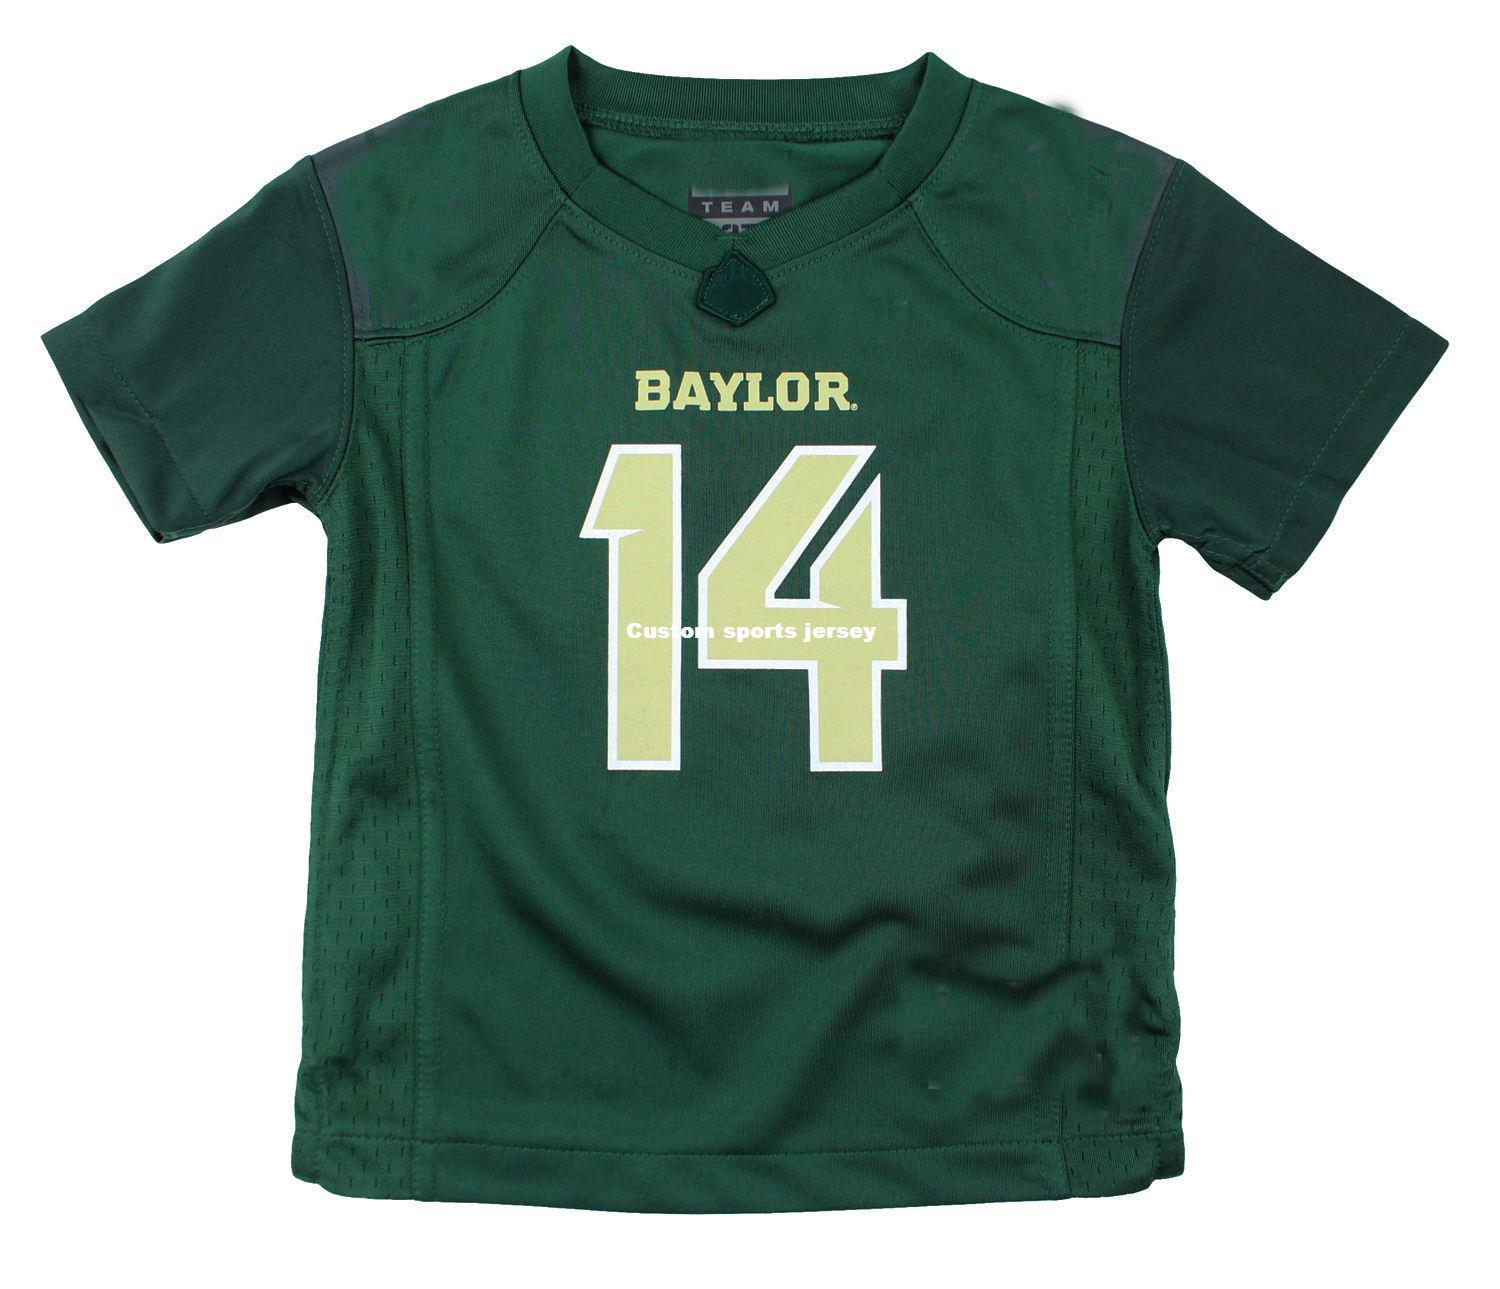 separation shoes 296b8 cb5fa Cheap custom NCAA College Baylor Bears # 14 Football Jersey Green  Customized Any name number Stitched Jersey XS-5XL